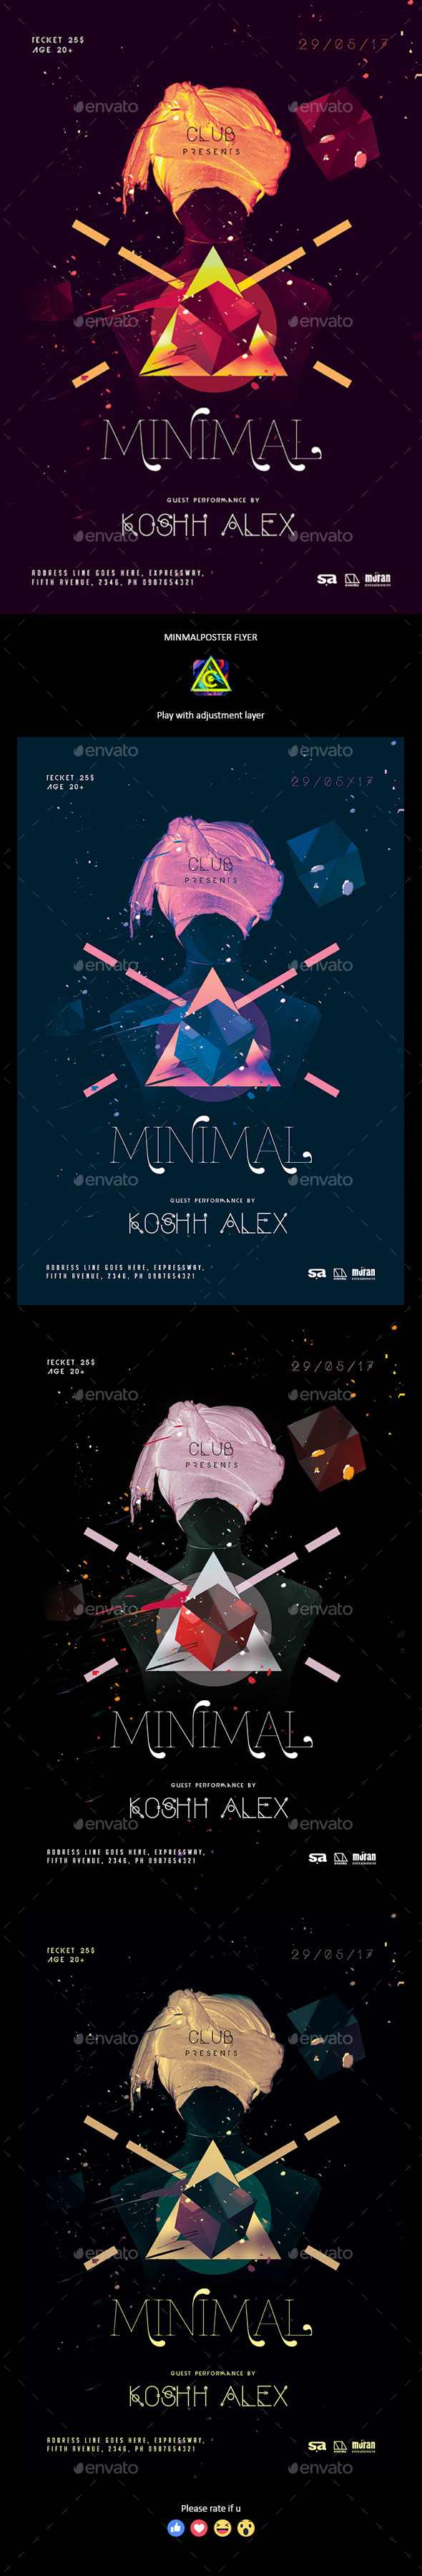 Minimal Poster / Flyer - Clubs & Parties Events